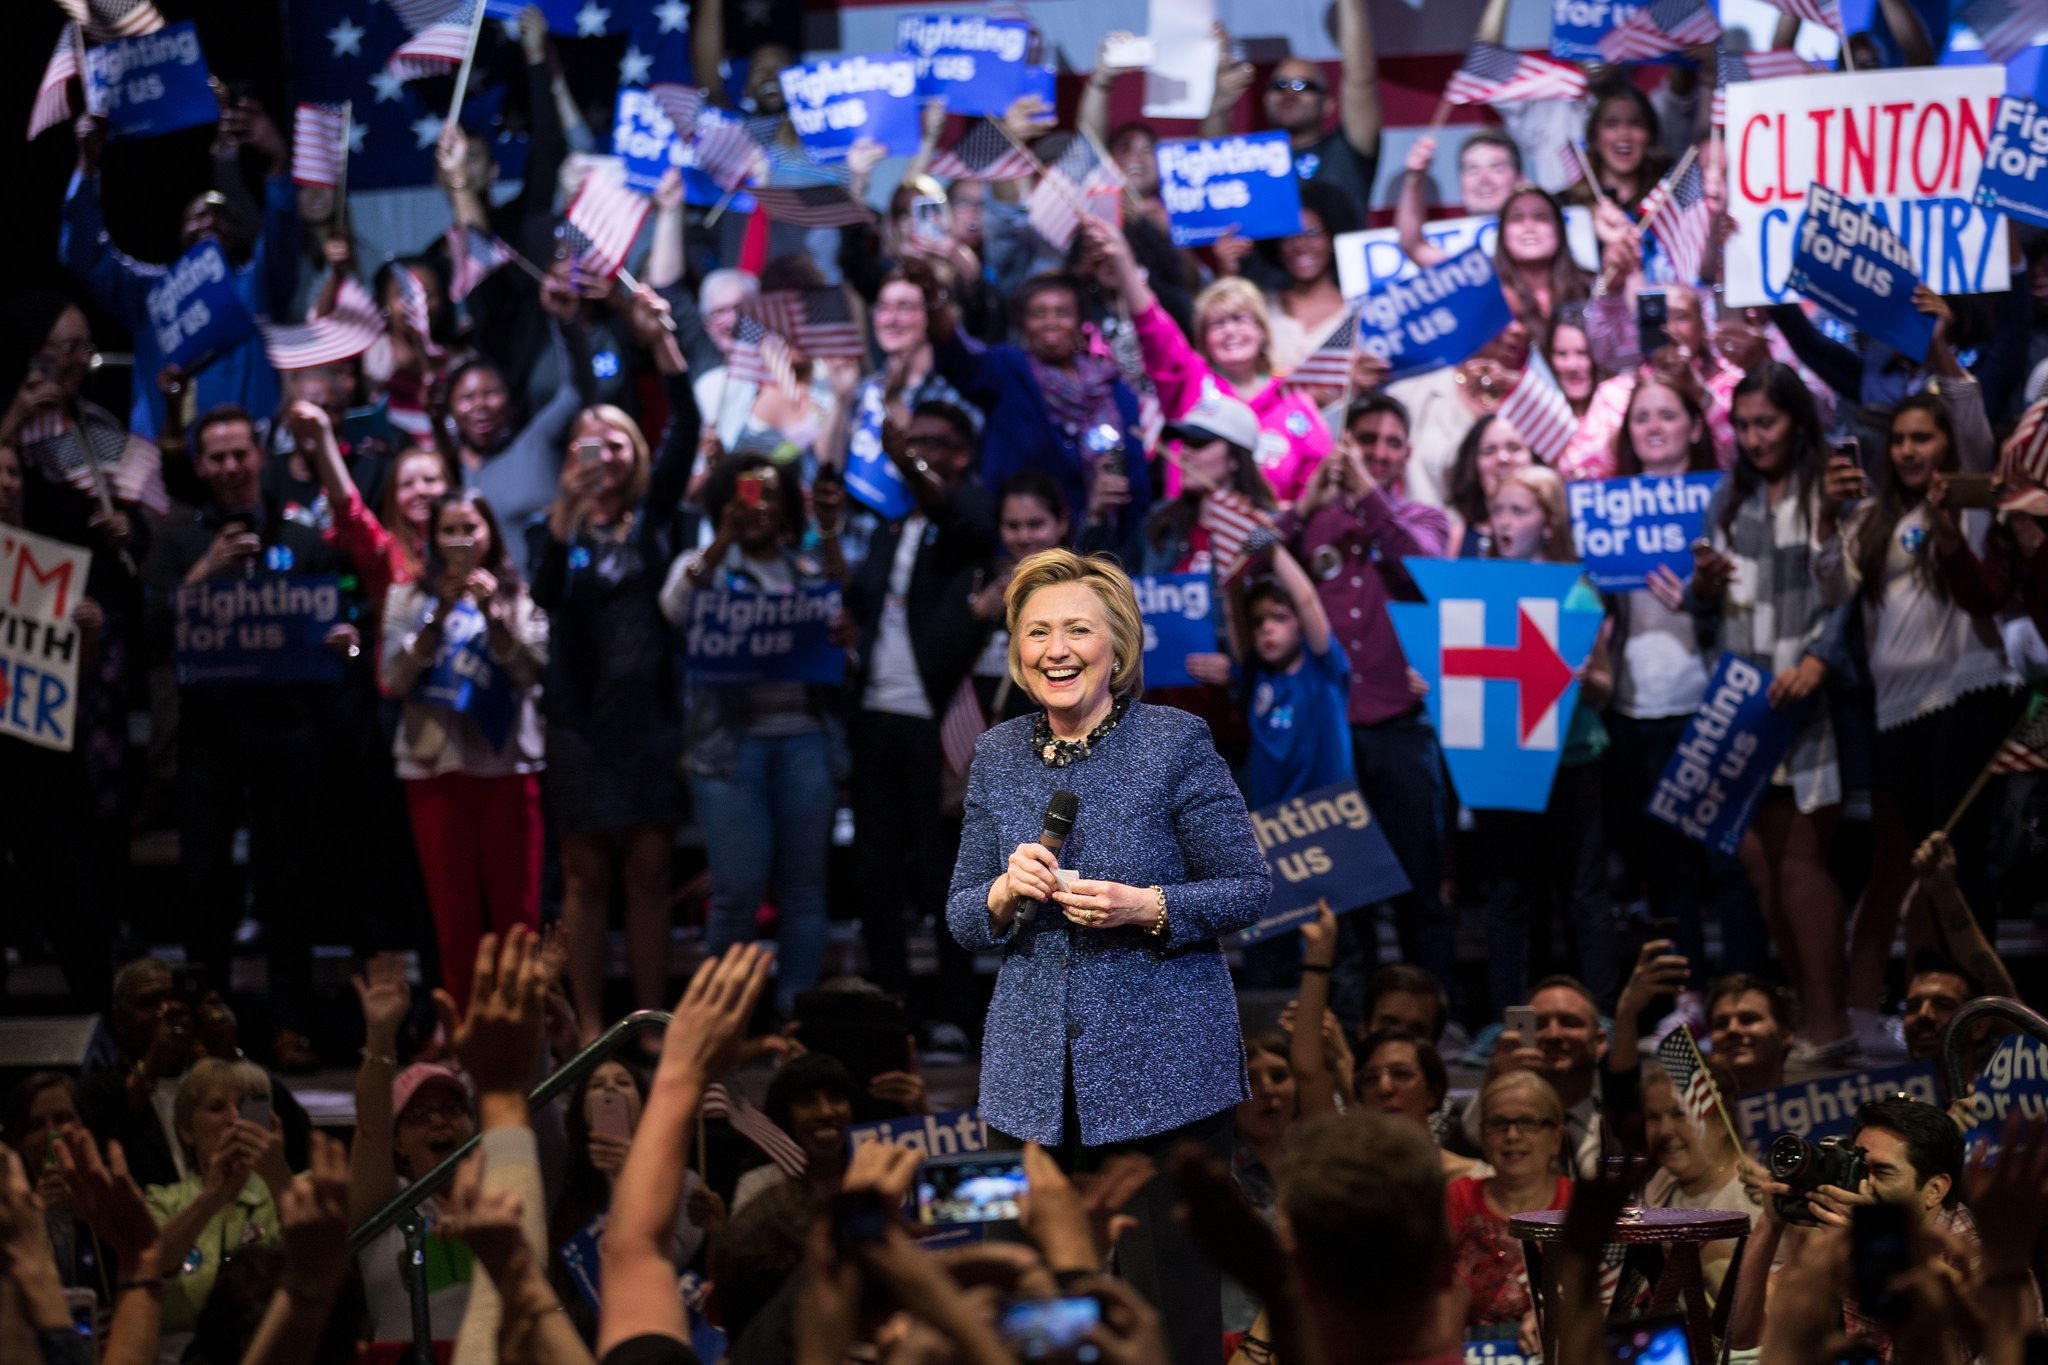 RT @HillaryClinton: Vote by vote, state by state, this team is building something special. Thanks for believing. -H https://t.co/GQoxEQ36Ew